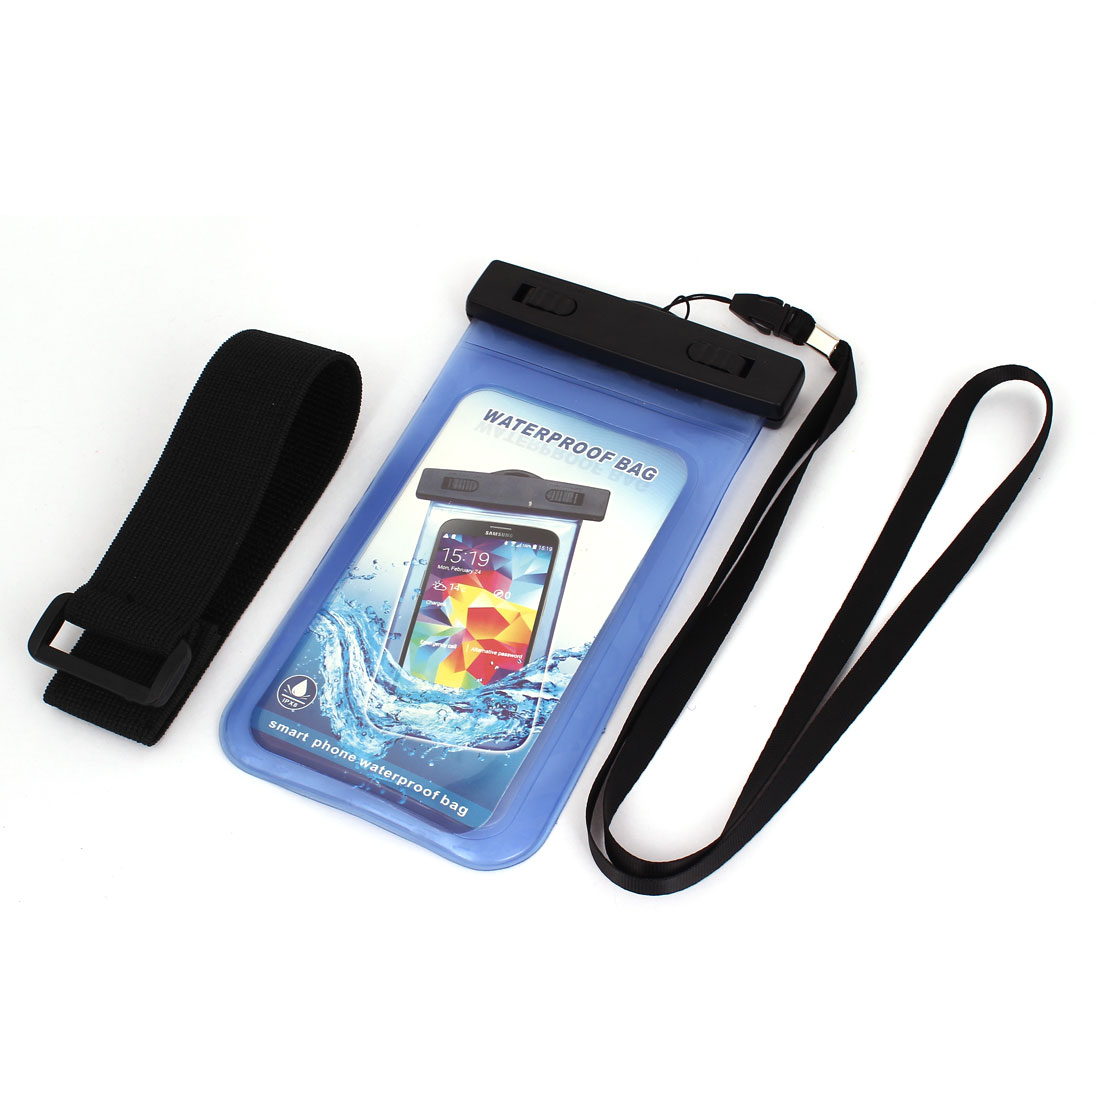 Cell Phone iPhone Waterproof Case Cover Bag Dry Pouch Light Blue w Armband